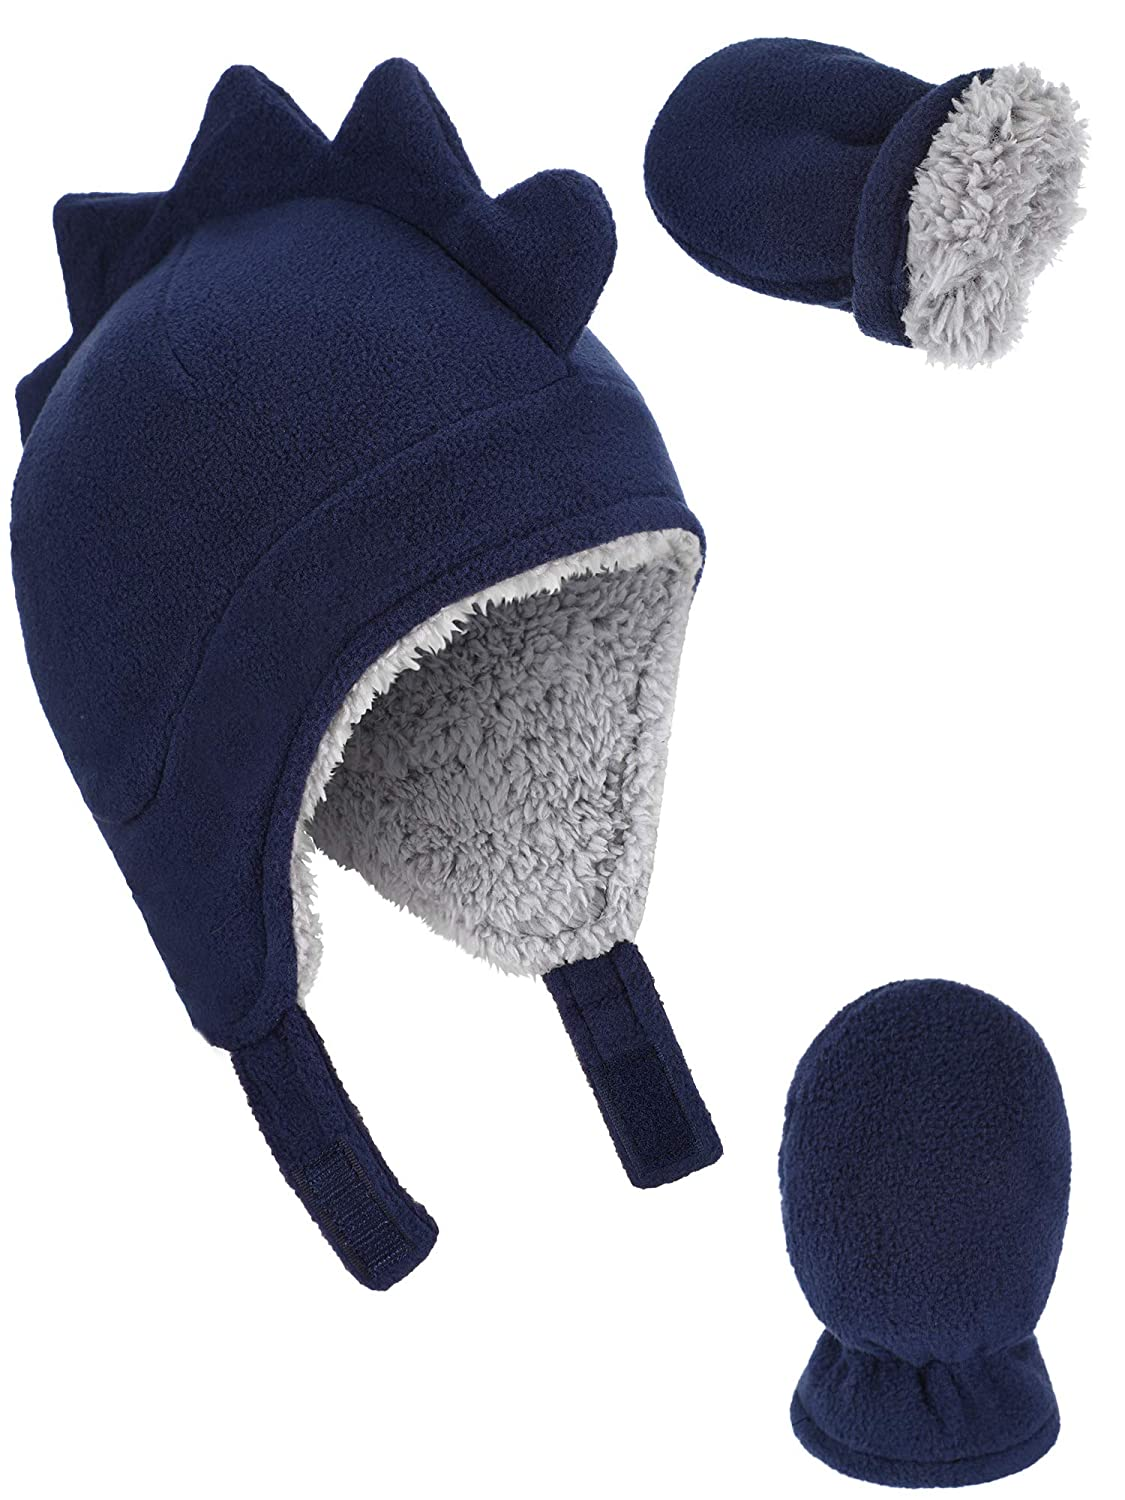 Boao 3 Pieces Totally Baby Winter Set Micro Fleece Hat Baby Knit Hat Warm Mitten Gloves